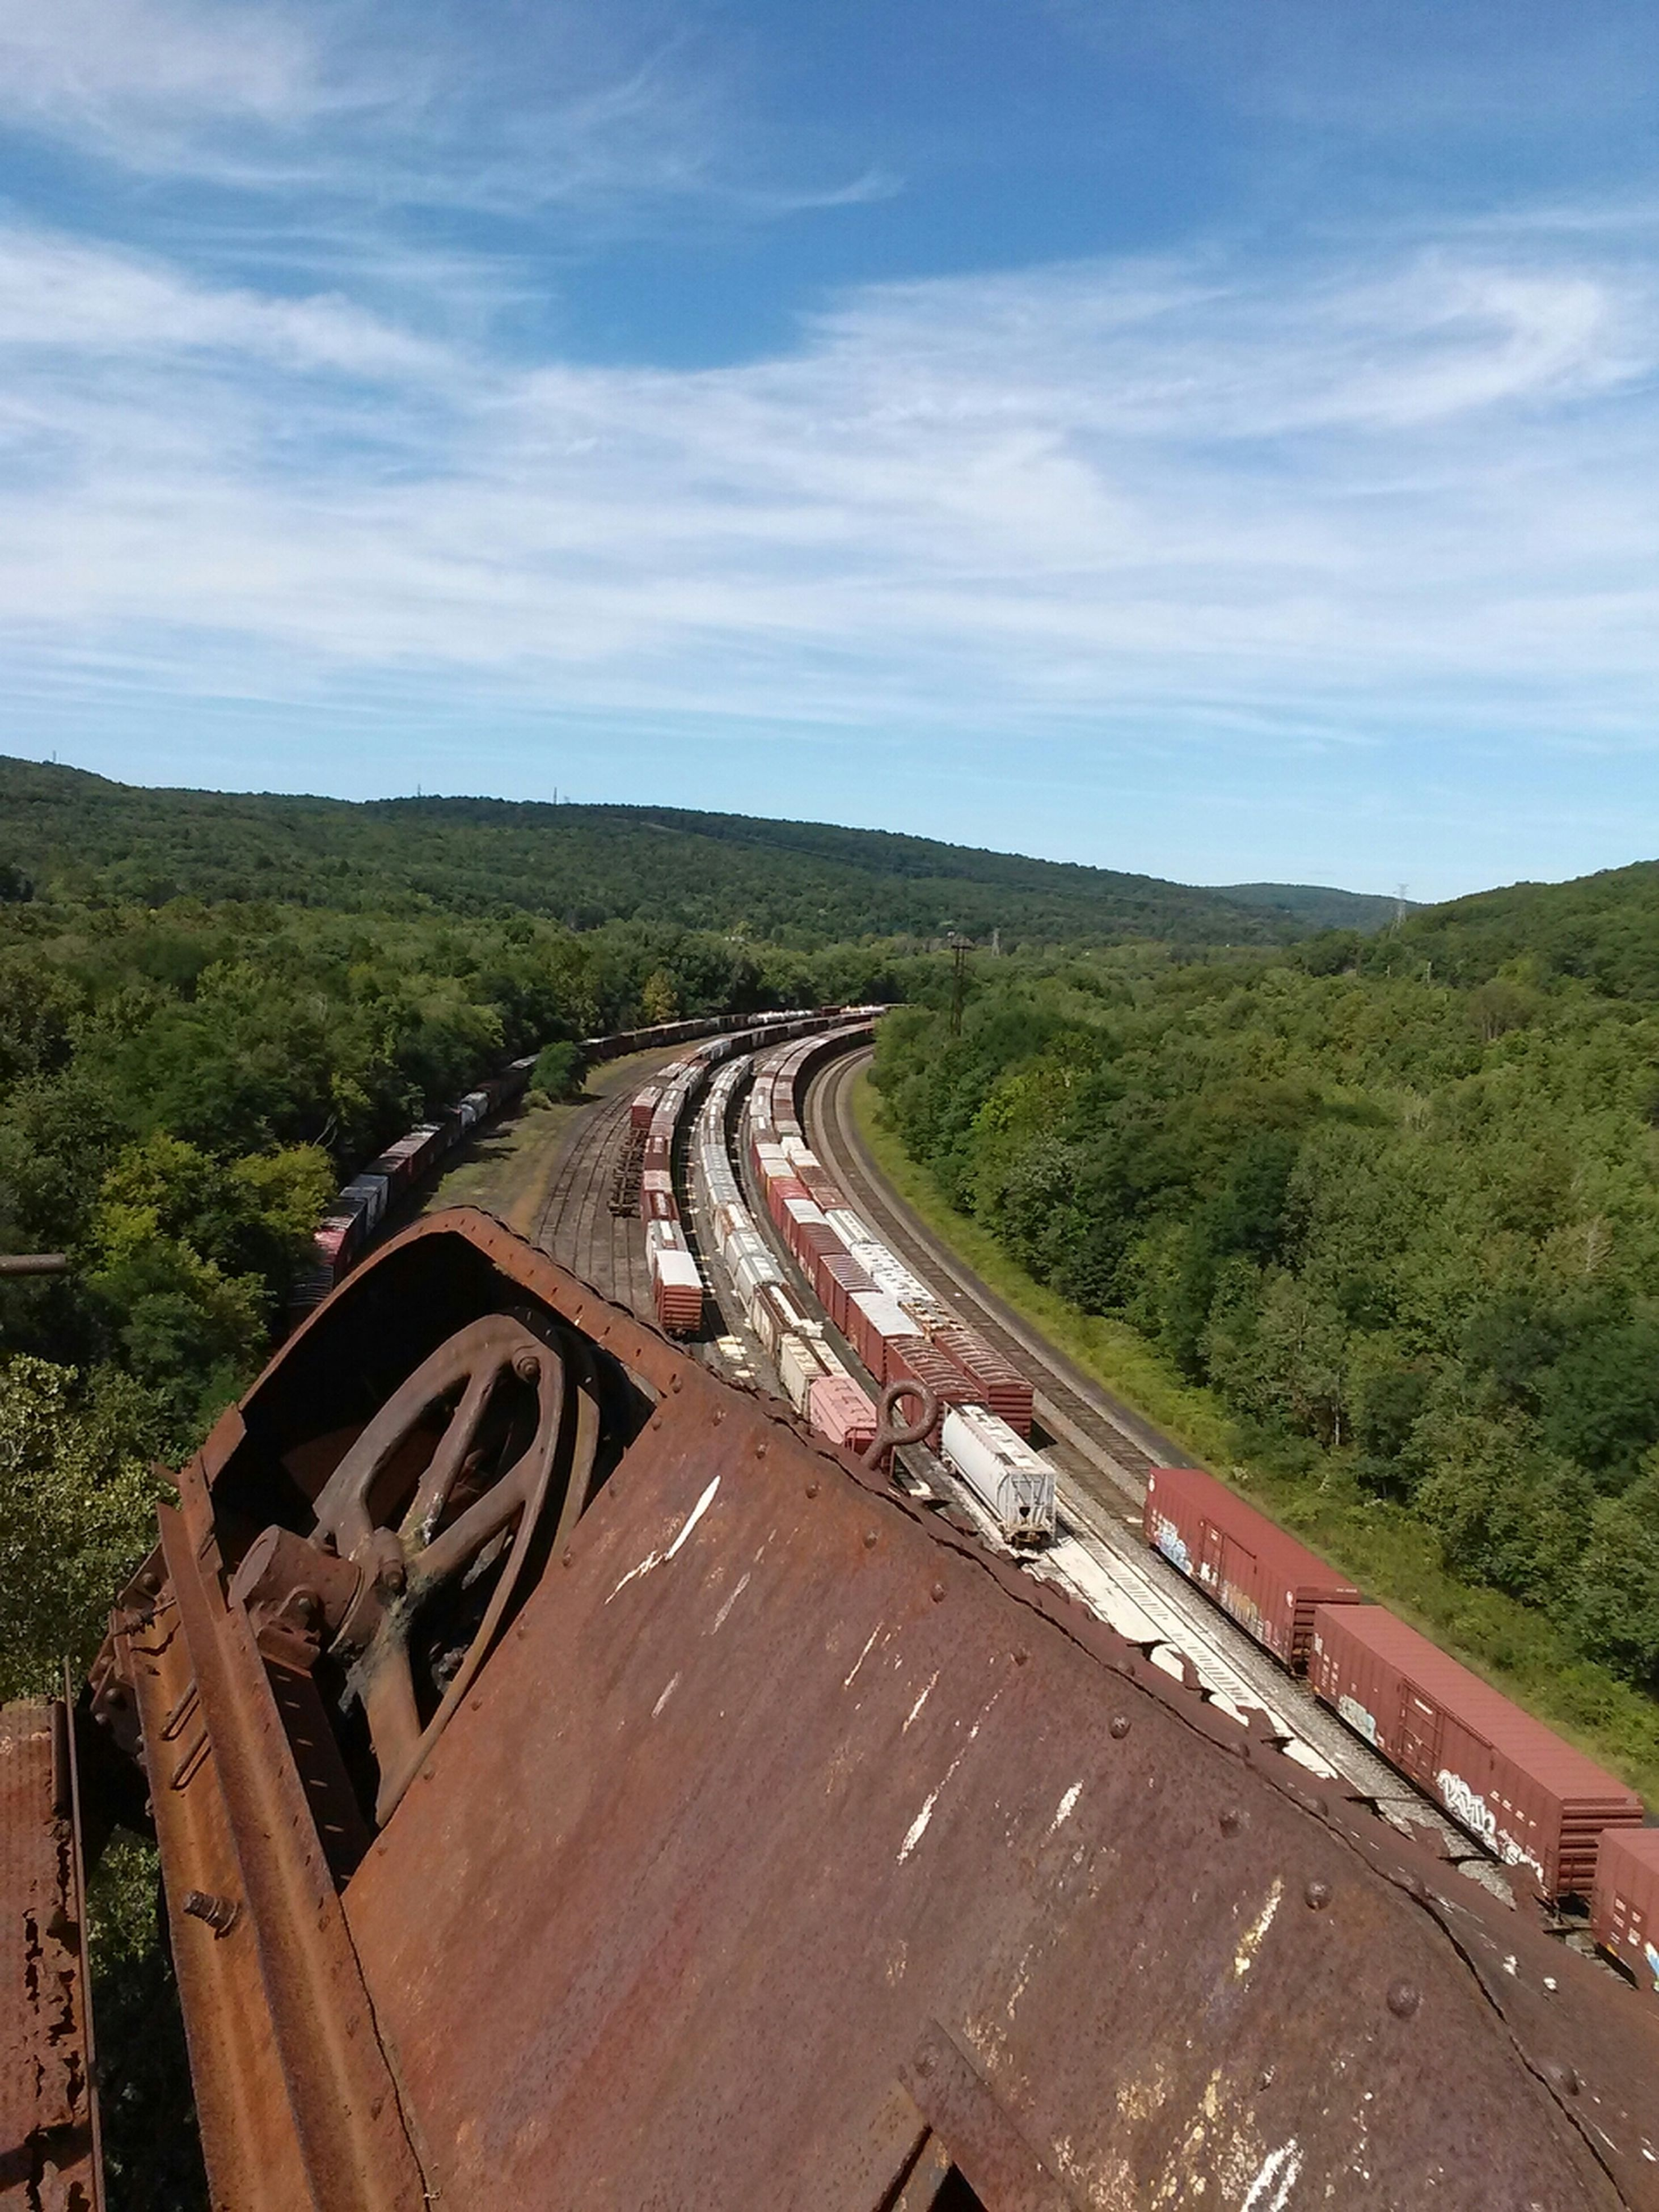 transportation, sky, cloud - sky, high angle view, landscape, railroad track, road, tree, cloud, built structure, rail transportation, cloudy, the way forward, nature, diminishing perspective, day, architecture, outdoors, green color, vanishing point